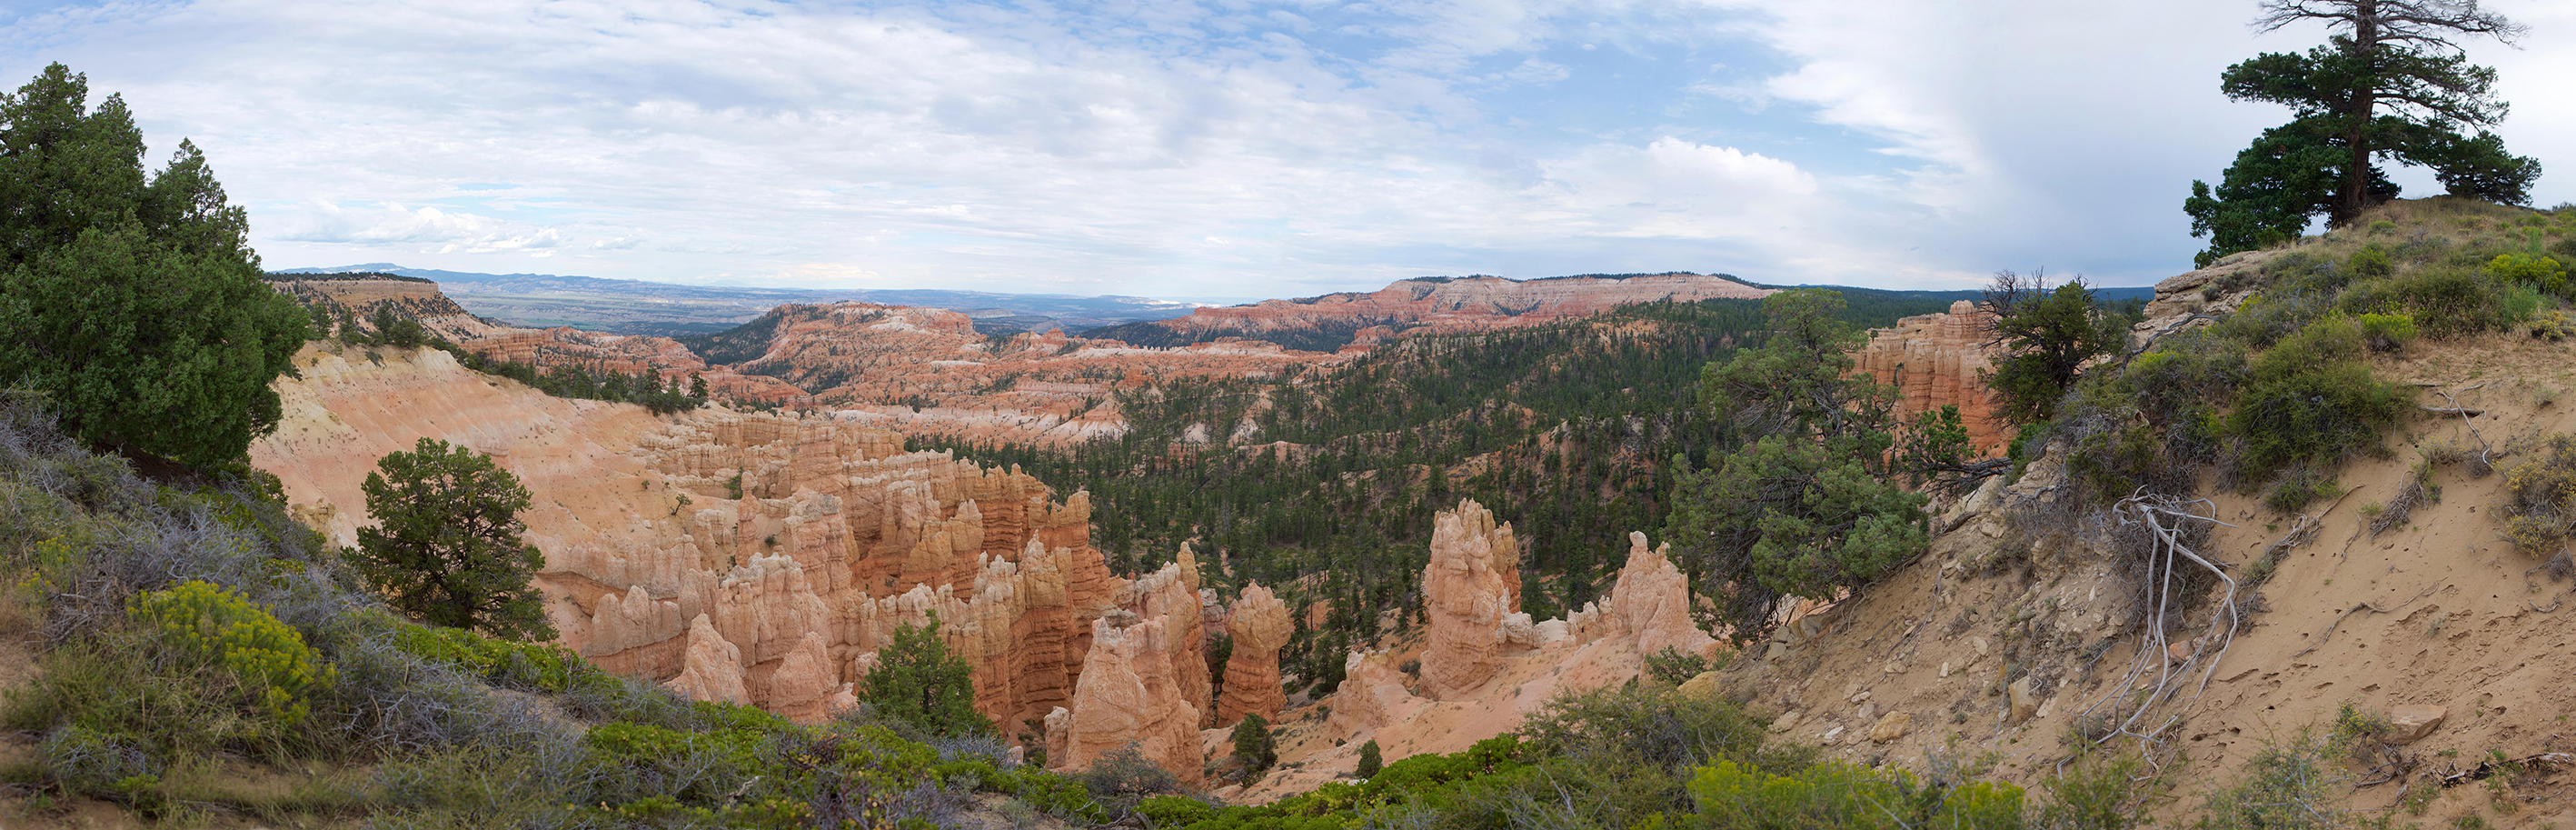 Brice Canyon, USA